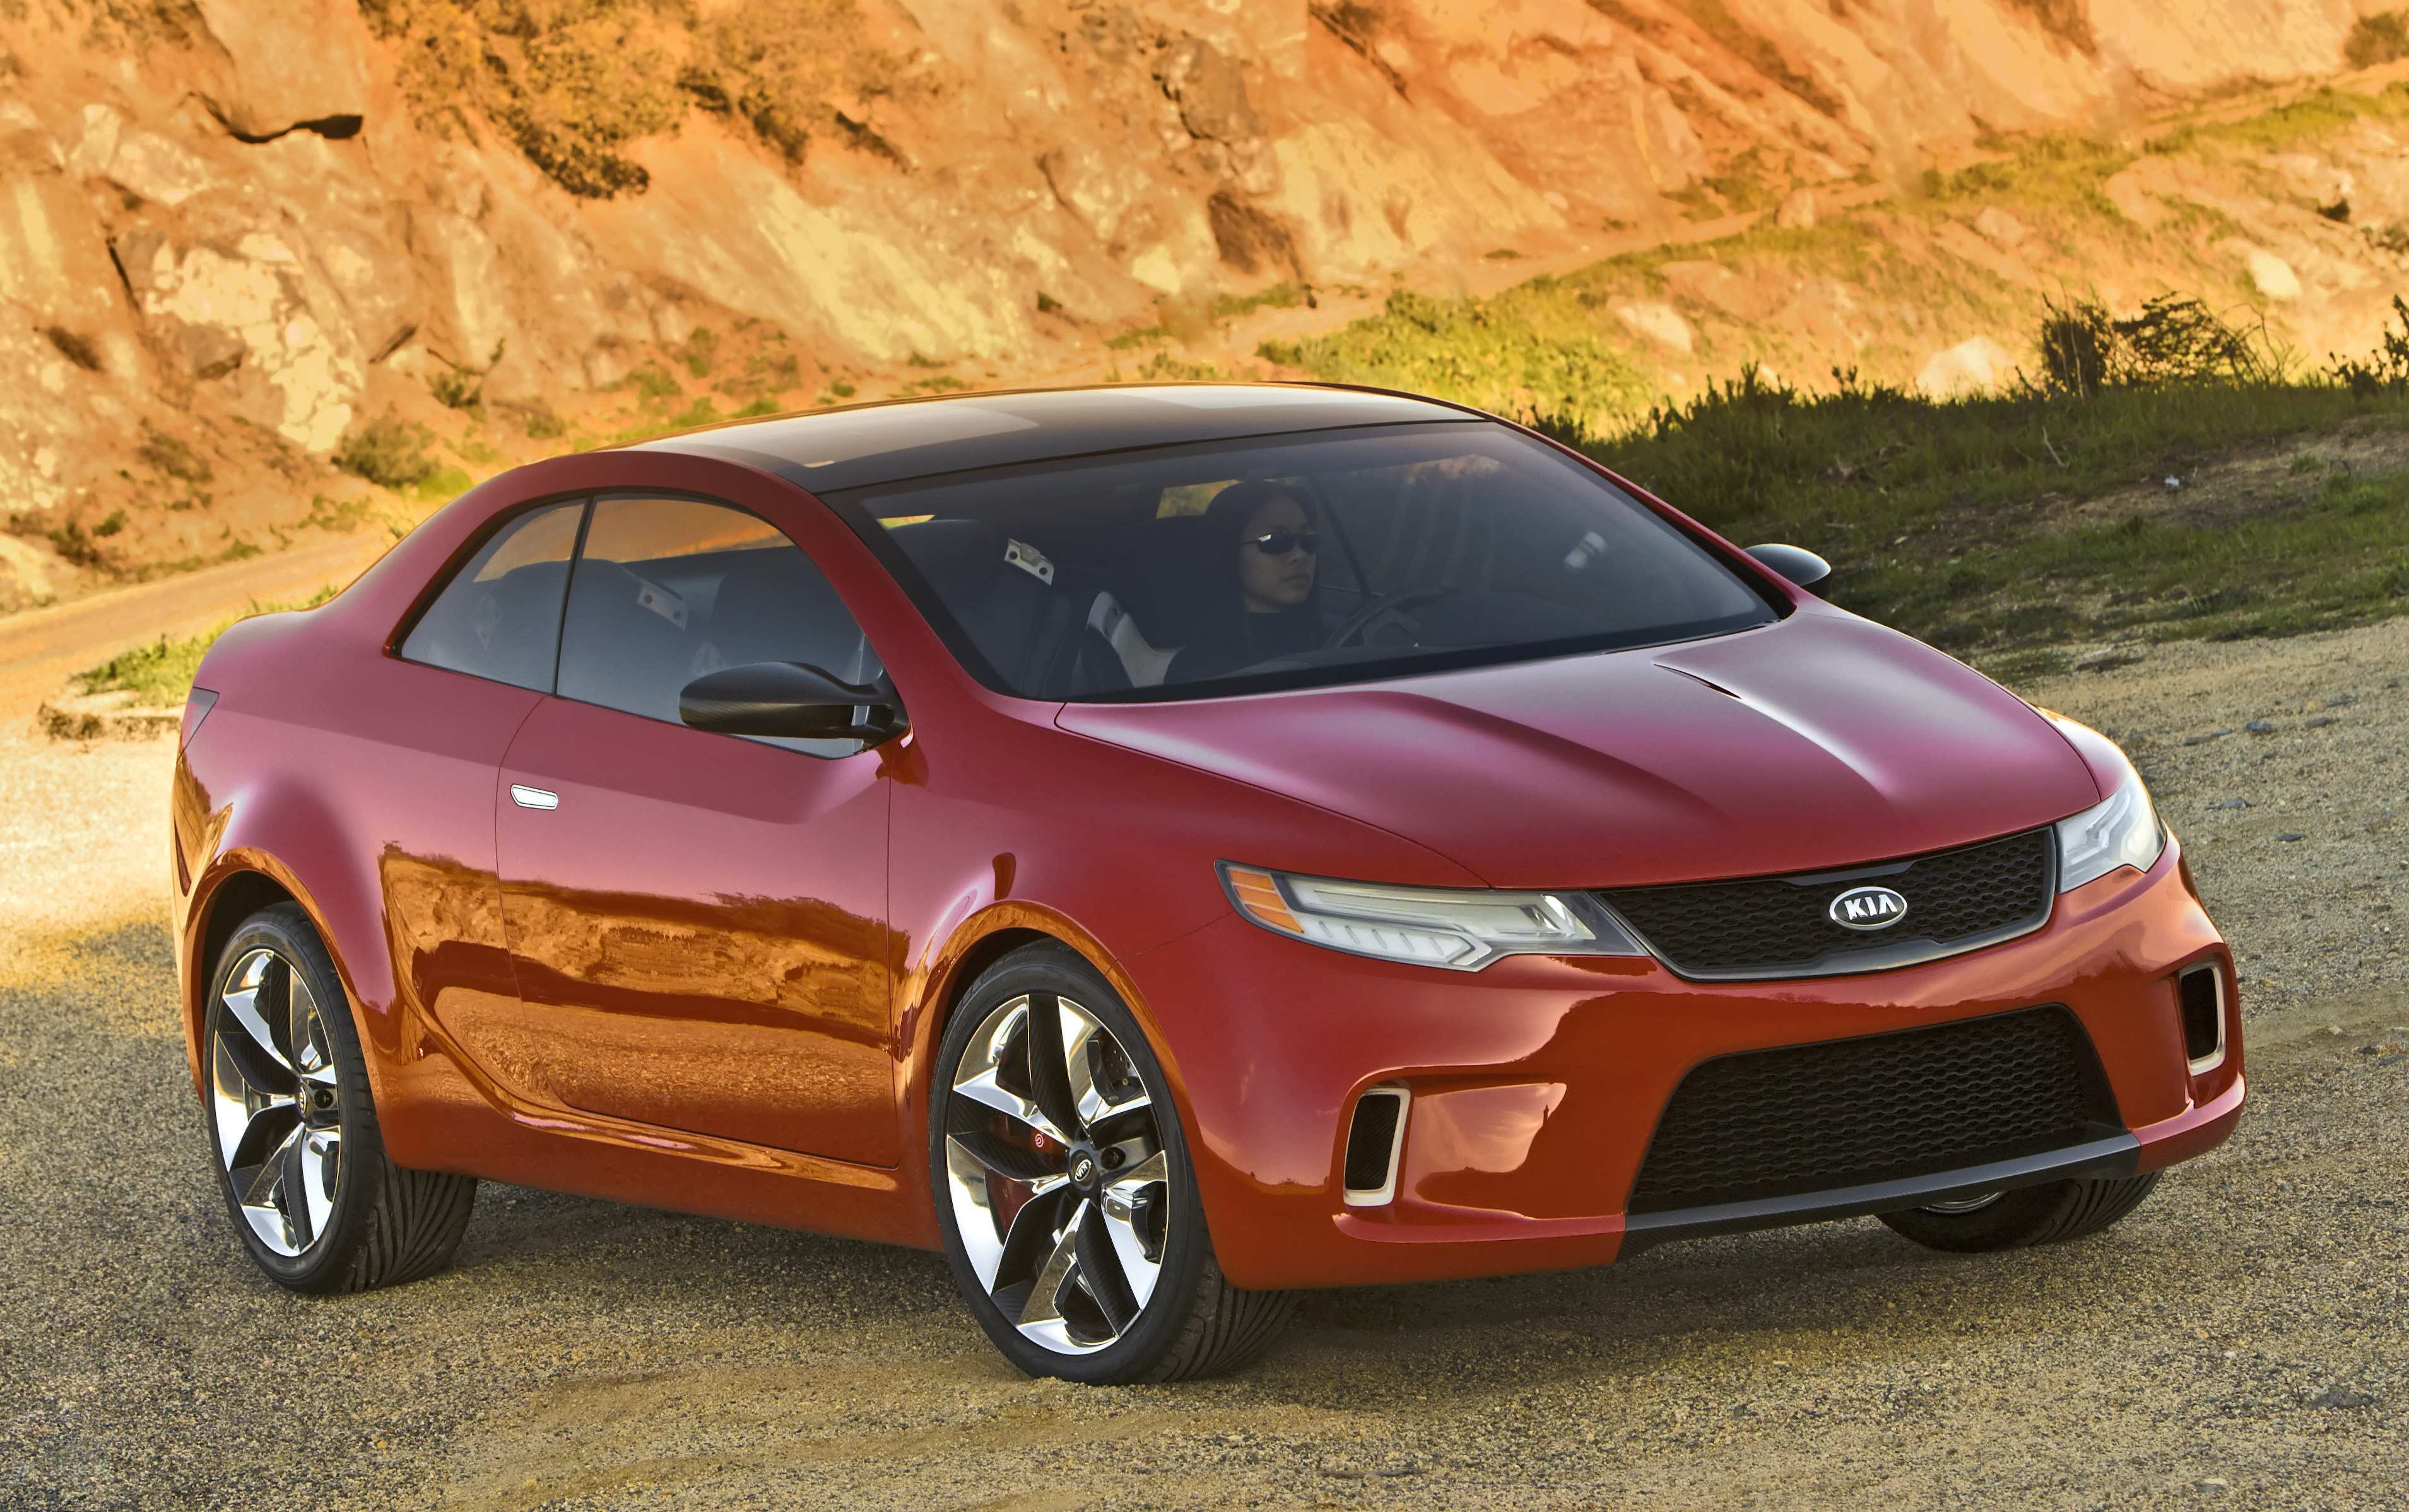 90 A Kia Koup 2019 Review And Release Date